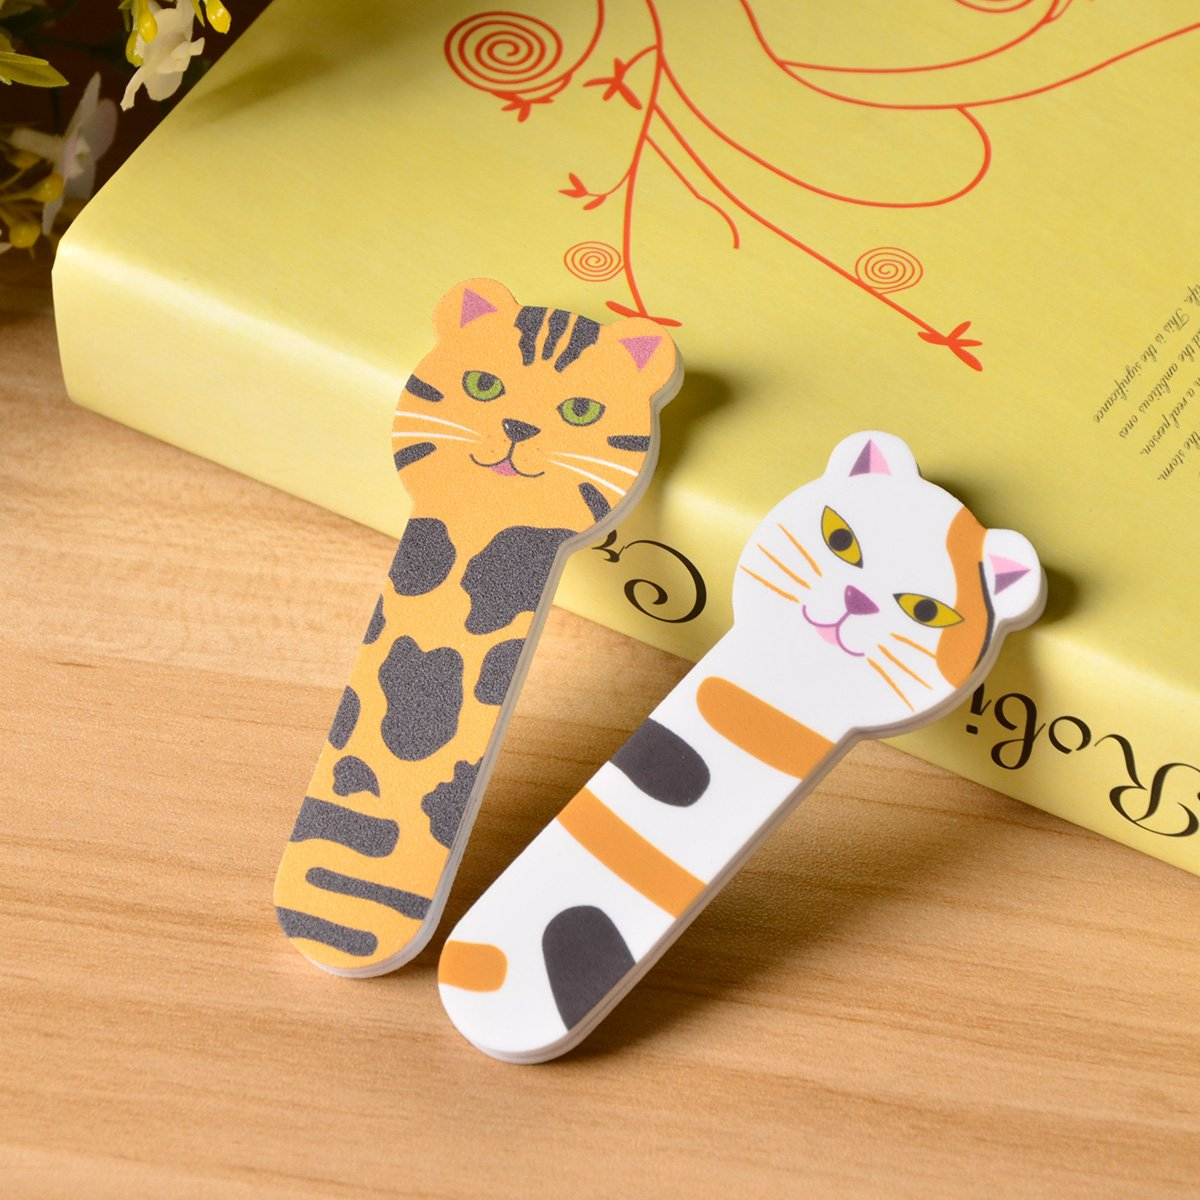 Professional Nail File set and Nail Buffer Cosmetic Manicure tool, Nail Shiner nail art set with lovely cat image, 2 Pack by MAYCREATE